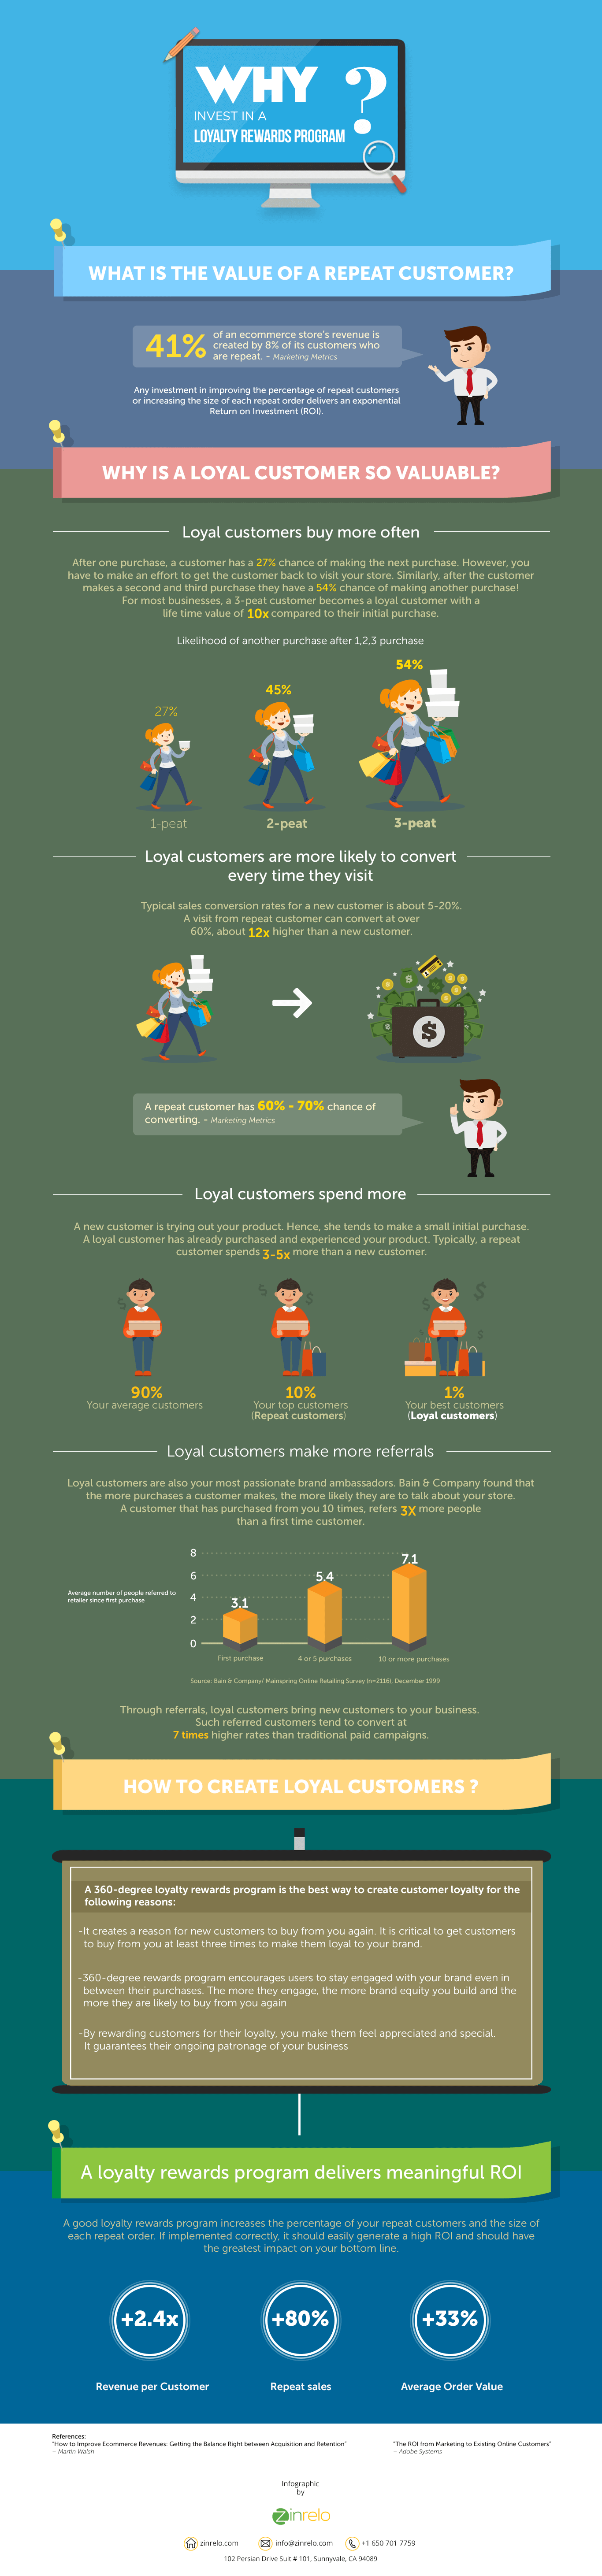 Loyalty Rewards Programs: Why They Are Worth Investing In - Infographic